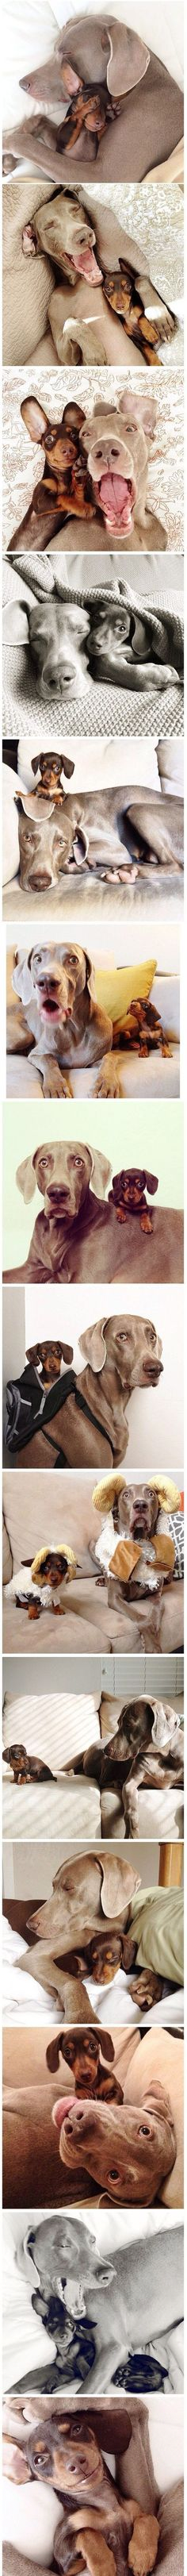 The two dogs took photos so freely,it will be pretty happy to have them at my home - Imgur